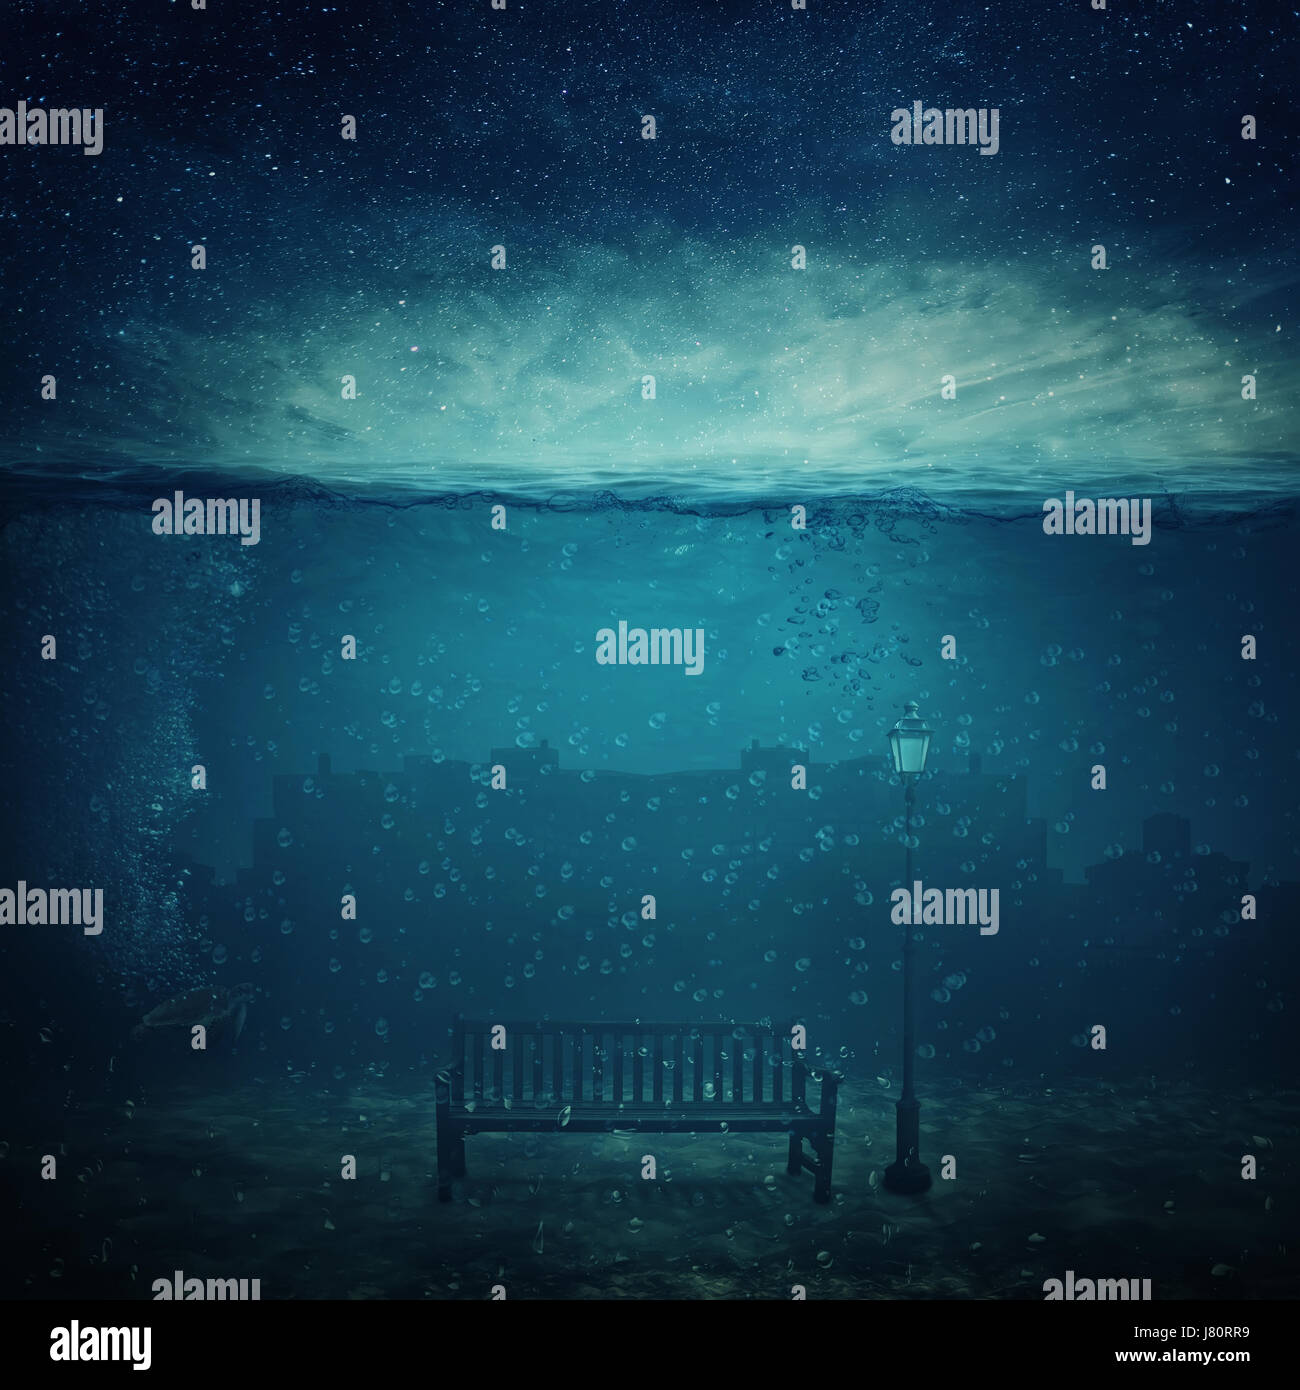 Underwater fantasy world. Modern city ruins under the sea and a wooden bench with a street lamp drowned. Adventure - Stock Image